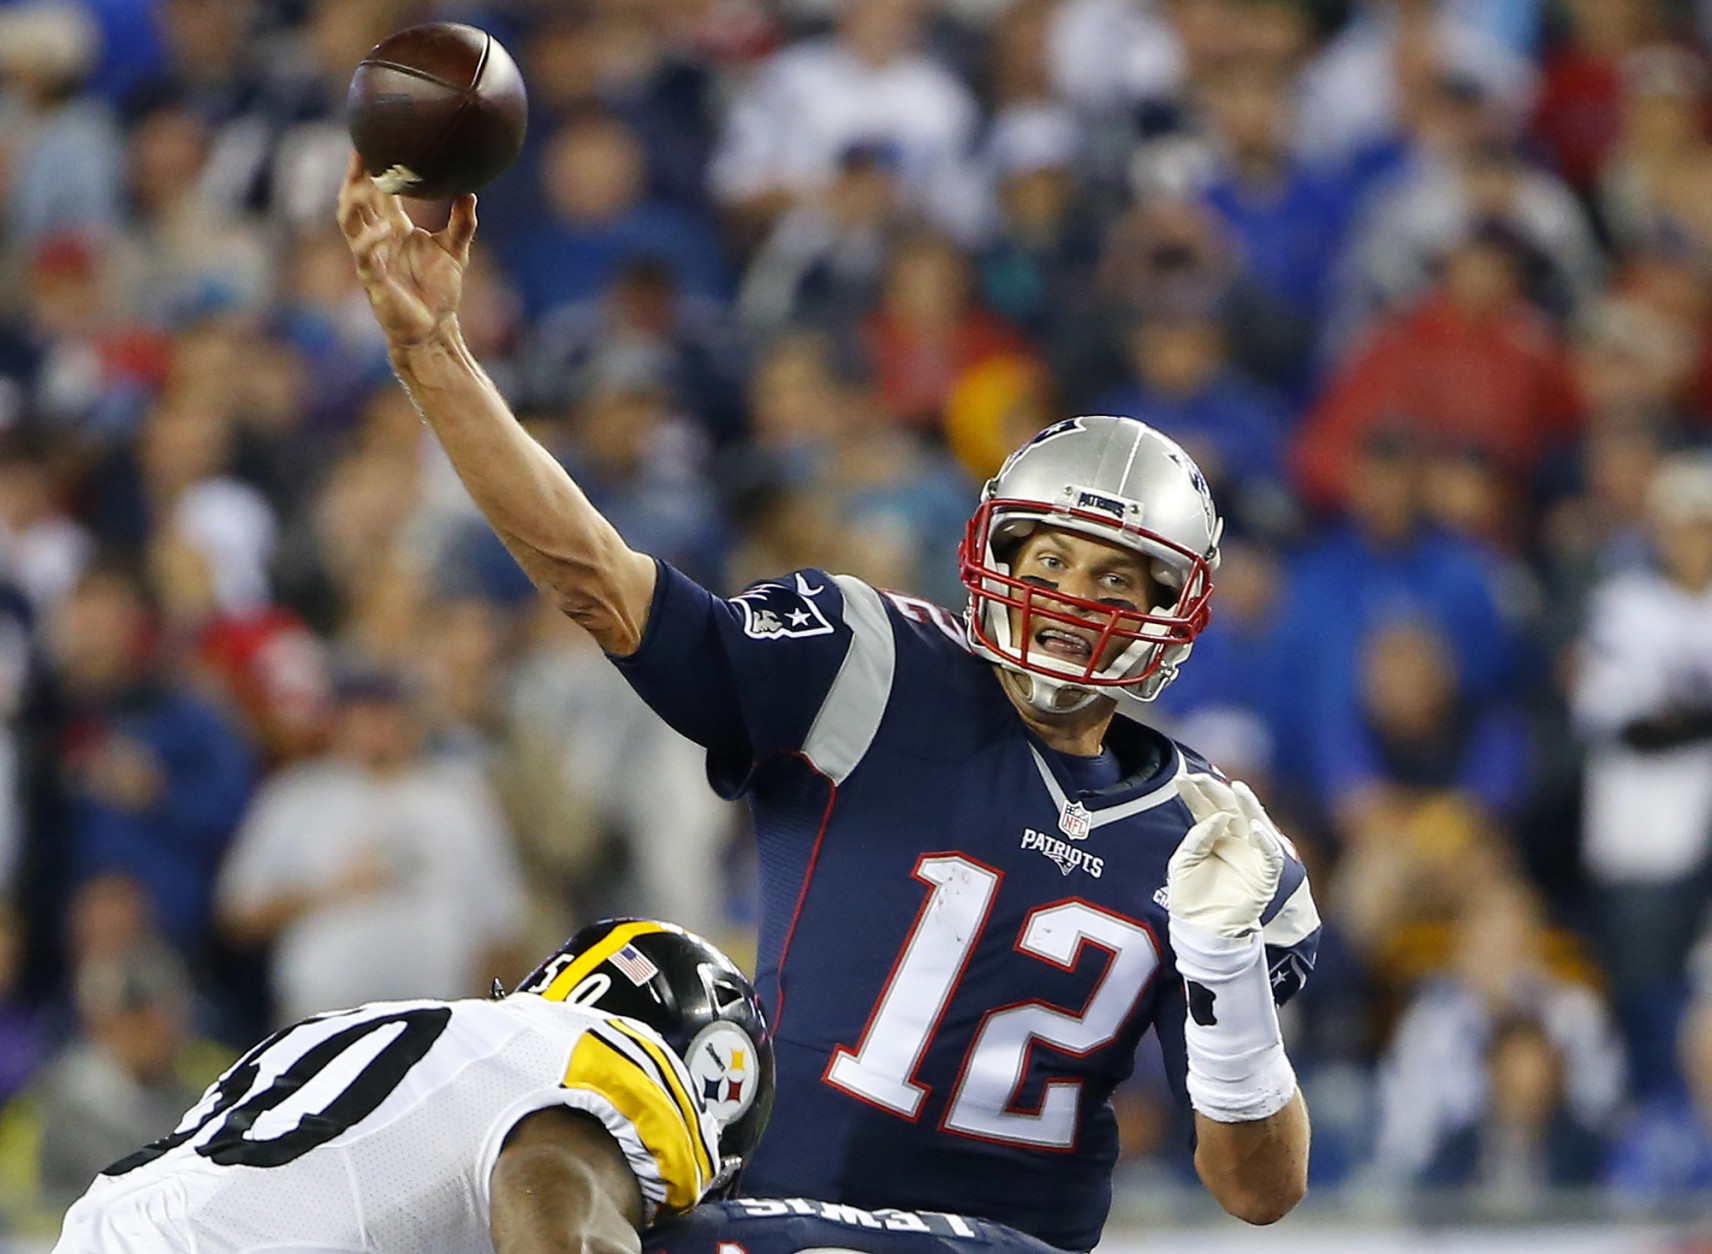 New England Patriots quarterback Tom Brady throws against the Pittsburgh Steelers in the first half of an NFL football game, Thursday, Sept. 10, 2015, in Foxborough, Mass. (AP Photo/Winslow Townson)